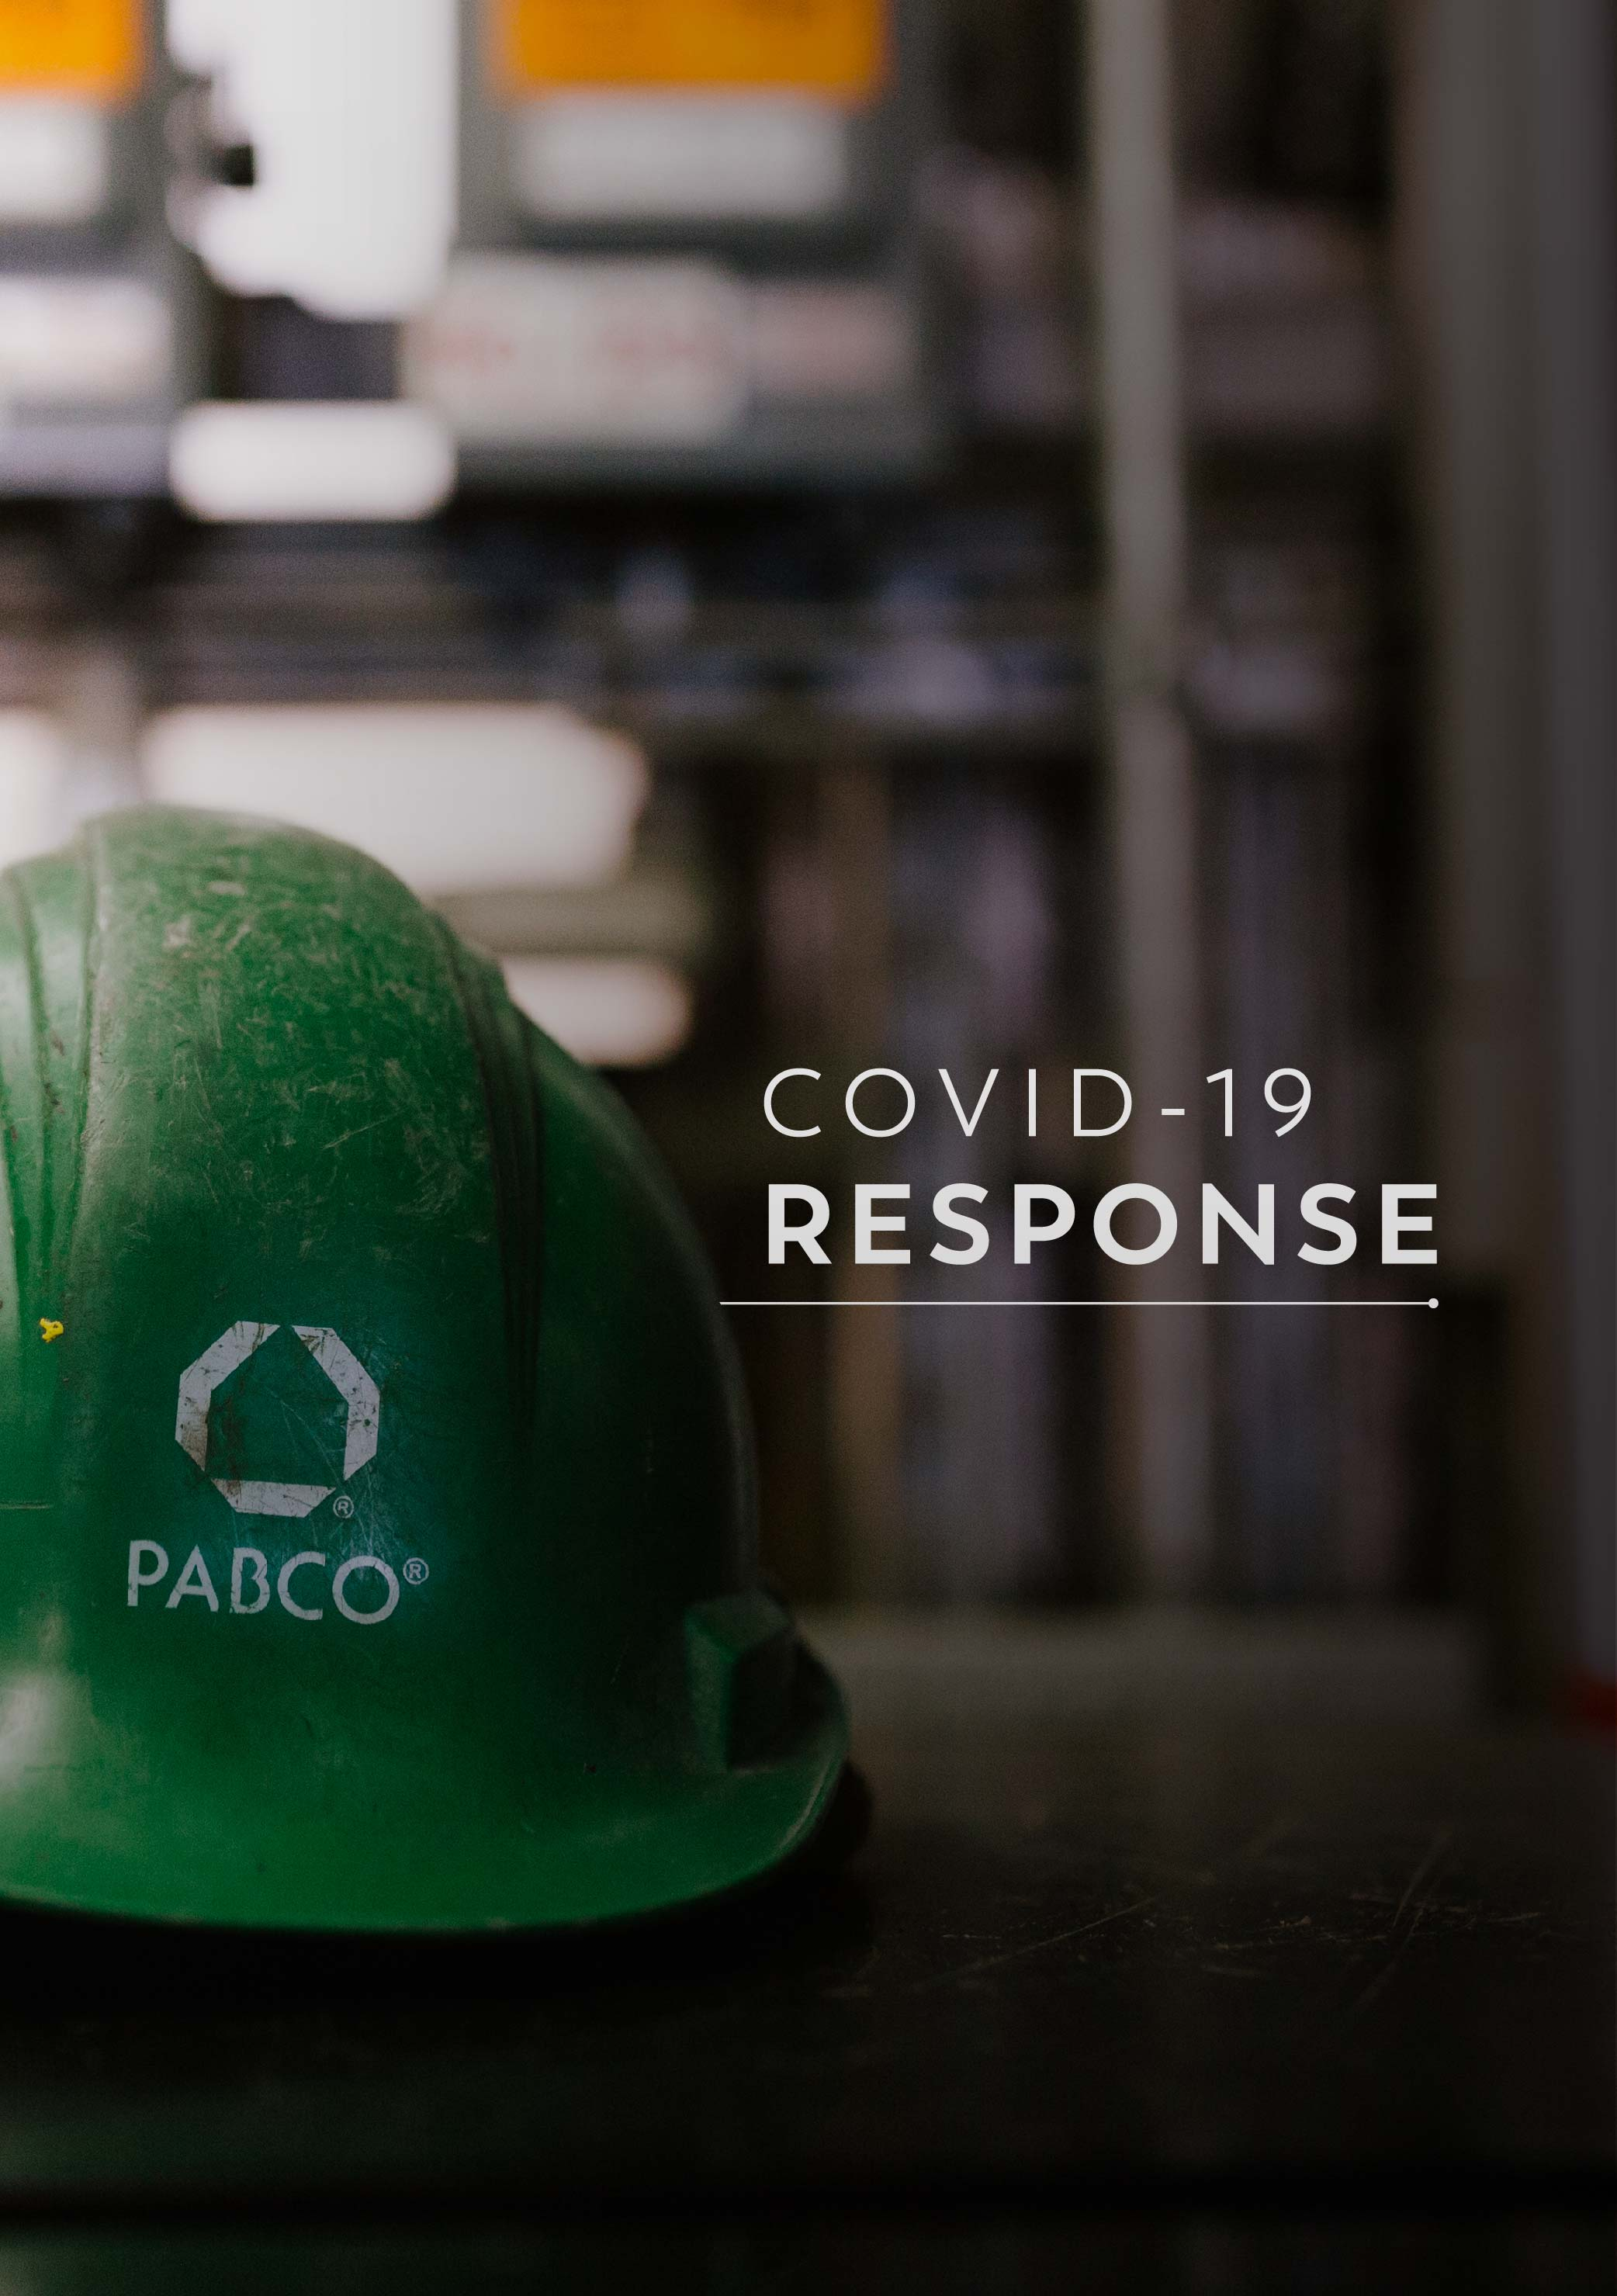 COVID-19 Response | PABCO Roofing Products